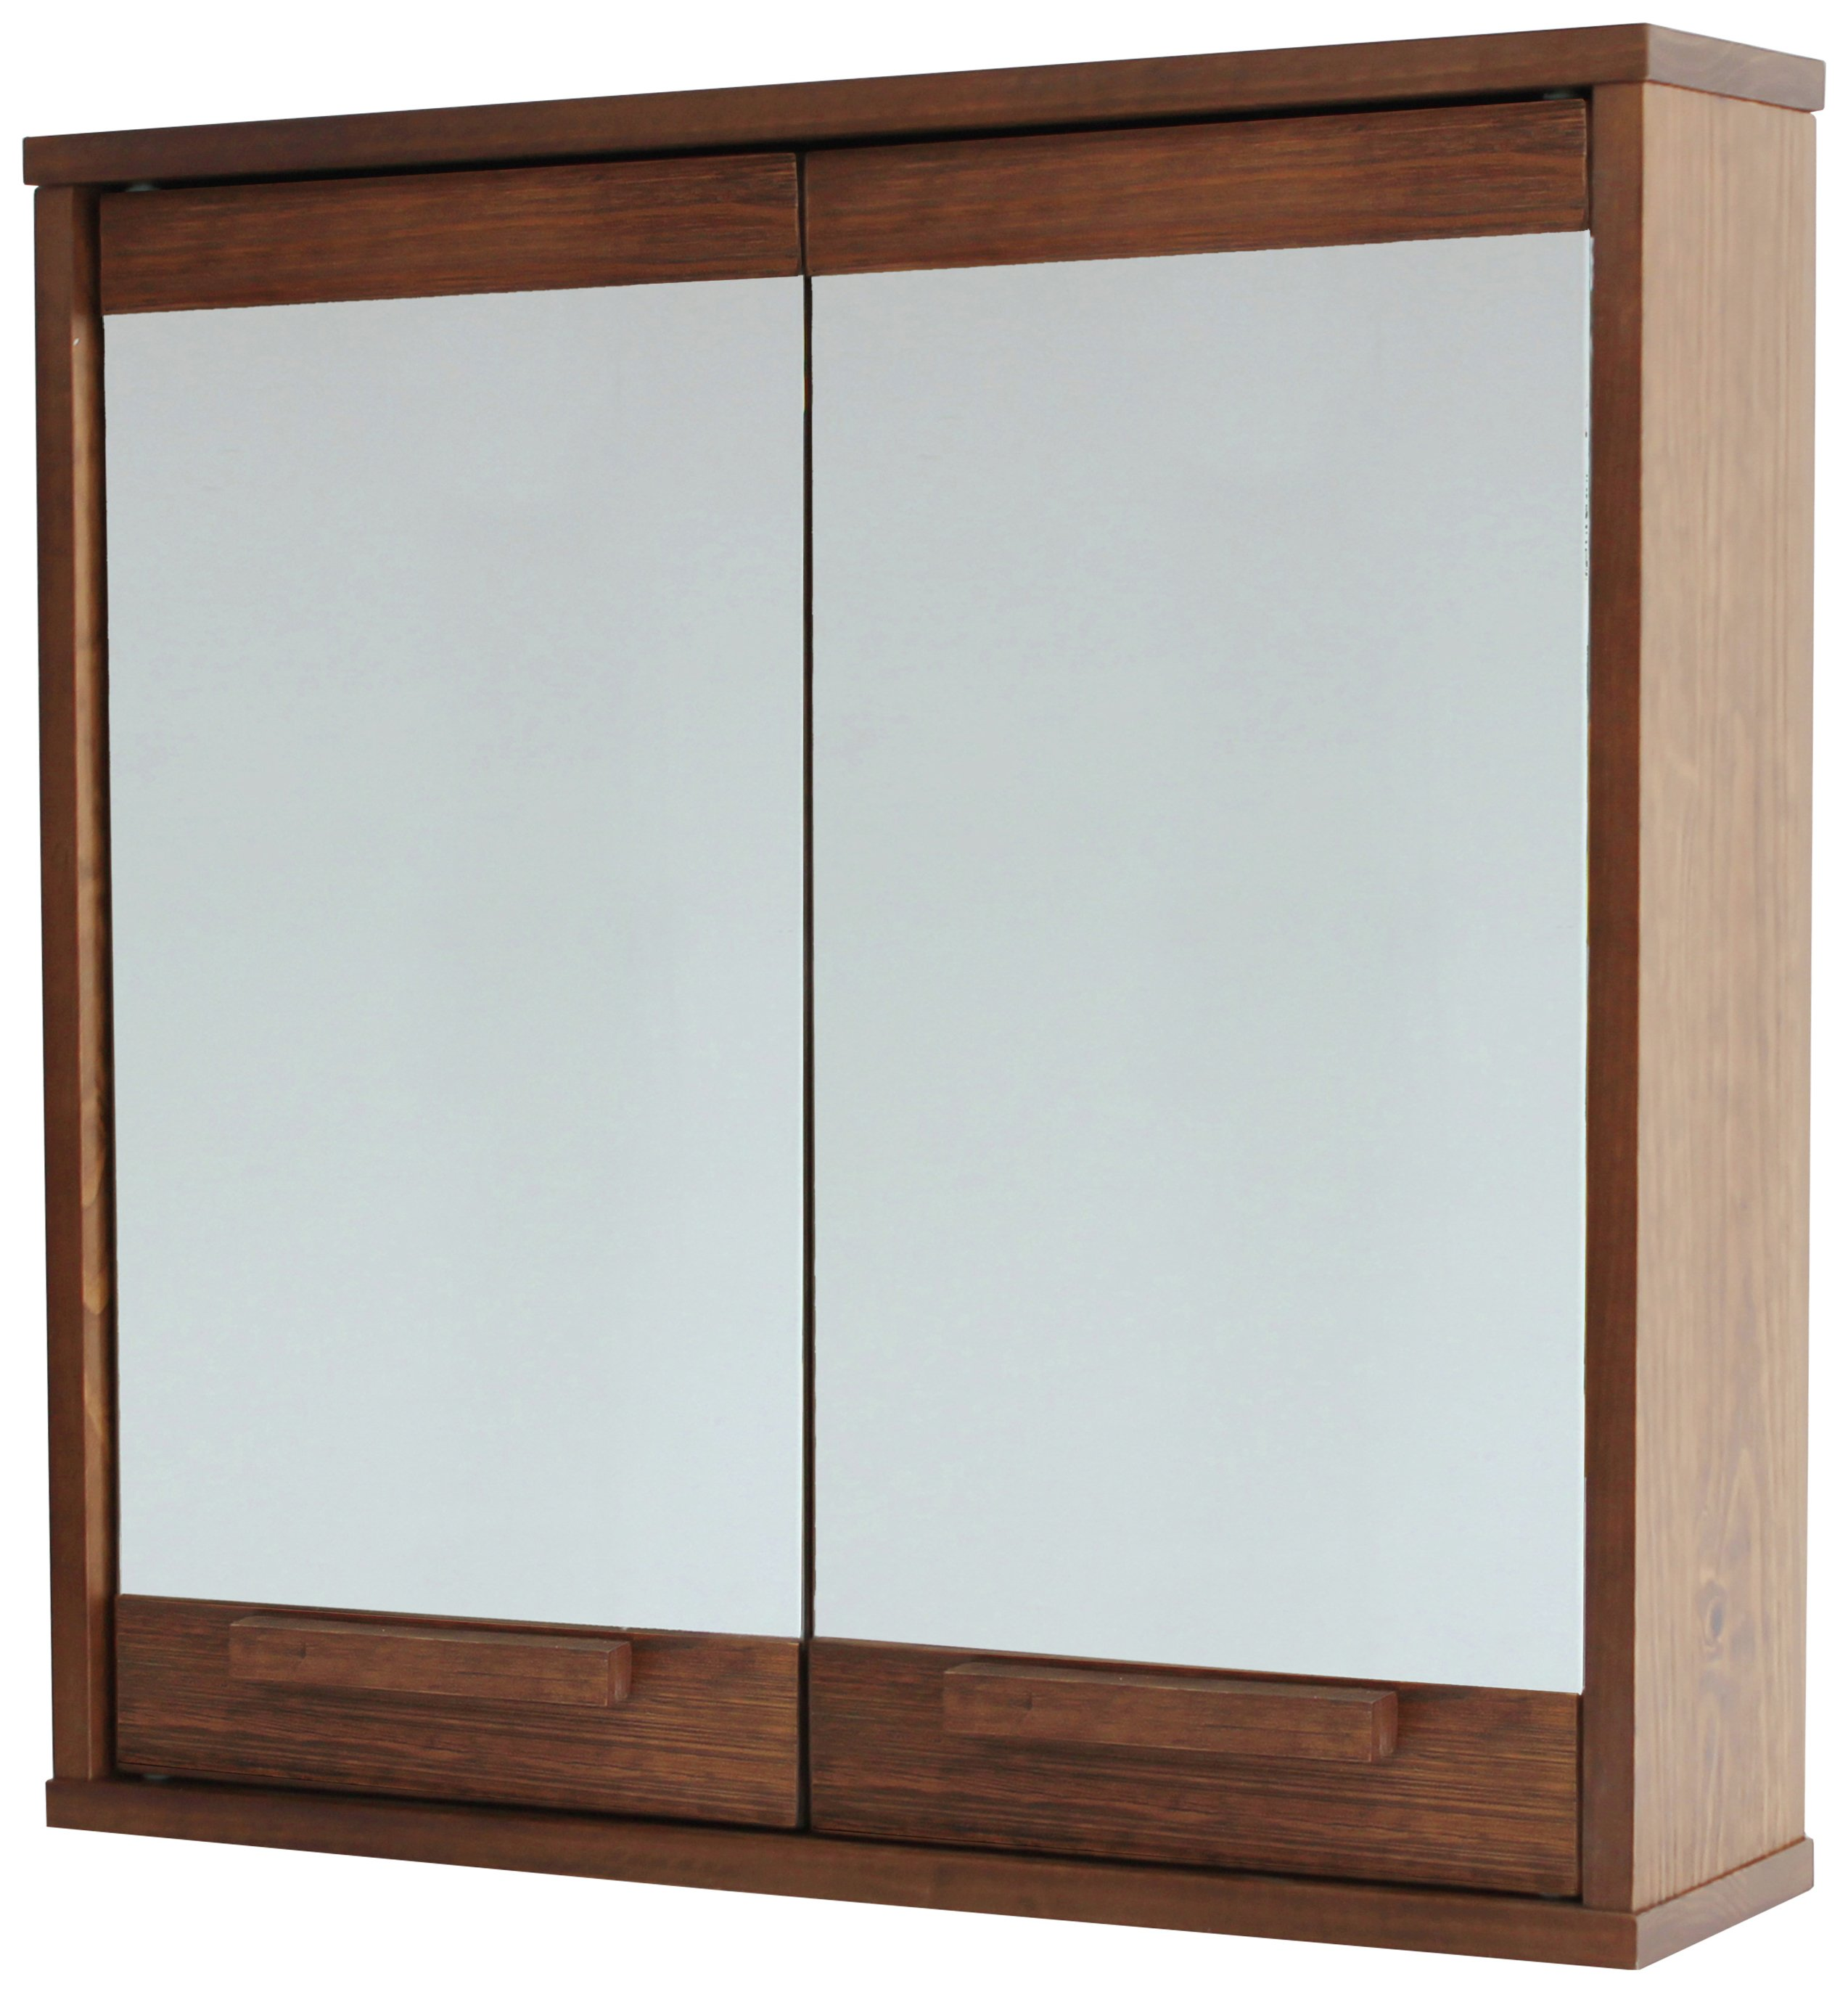 Superieur Argos Home Cranbrook Solid Pine Mirrored Wall Cabinet544/3507